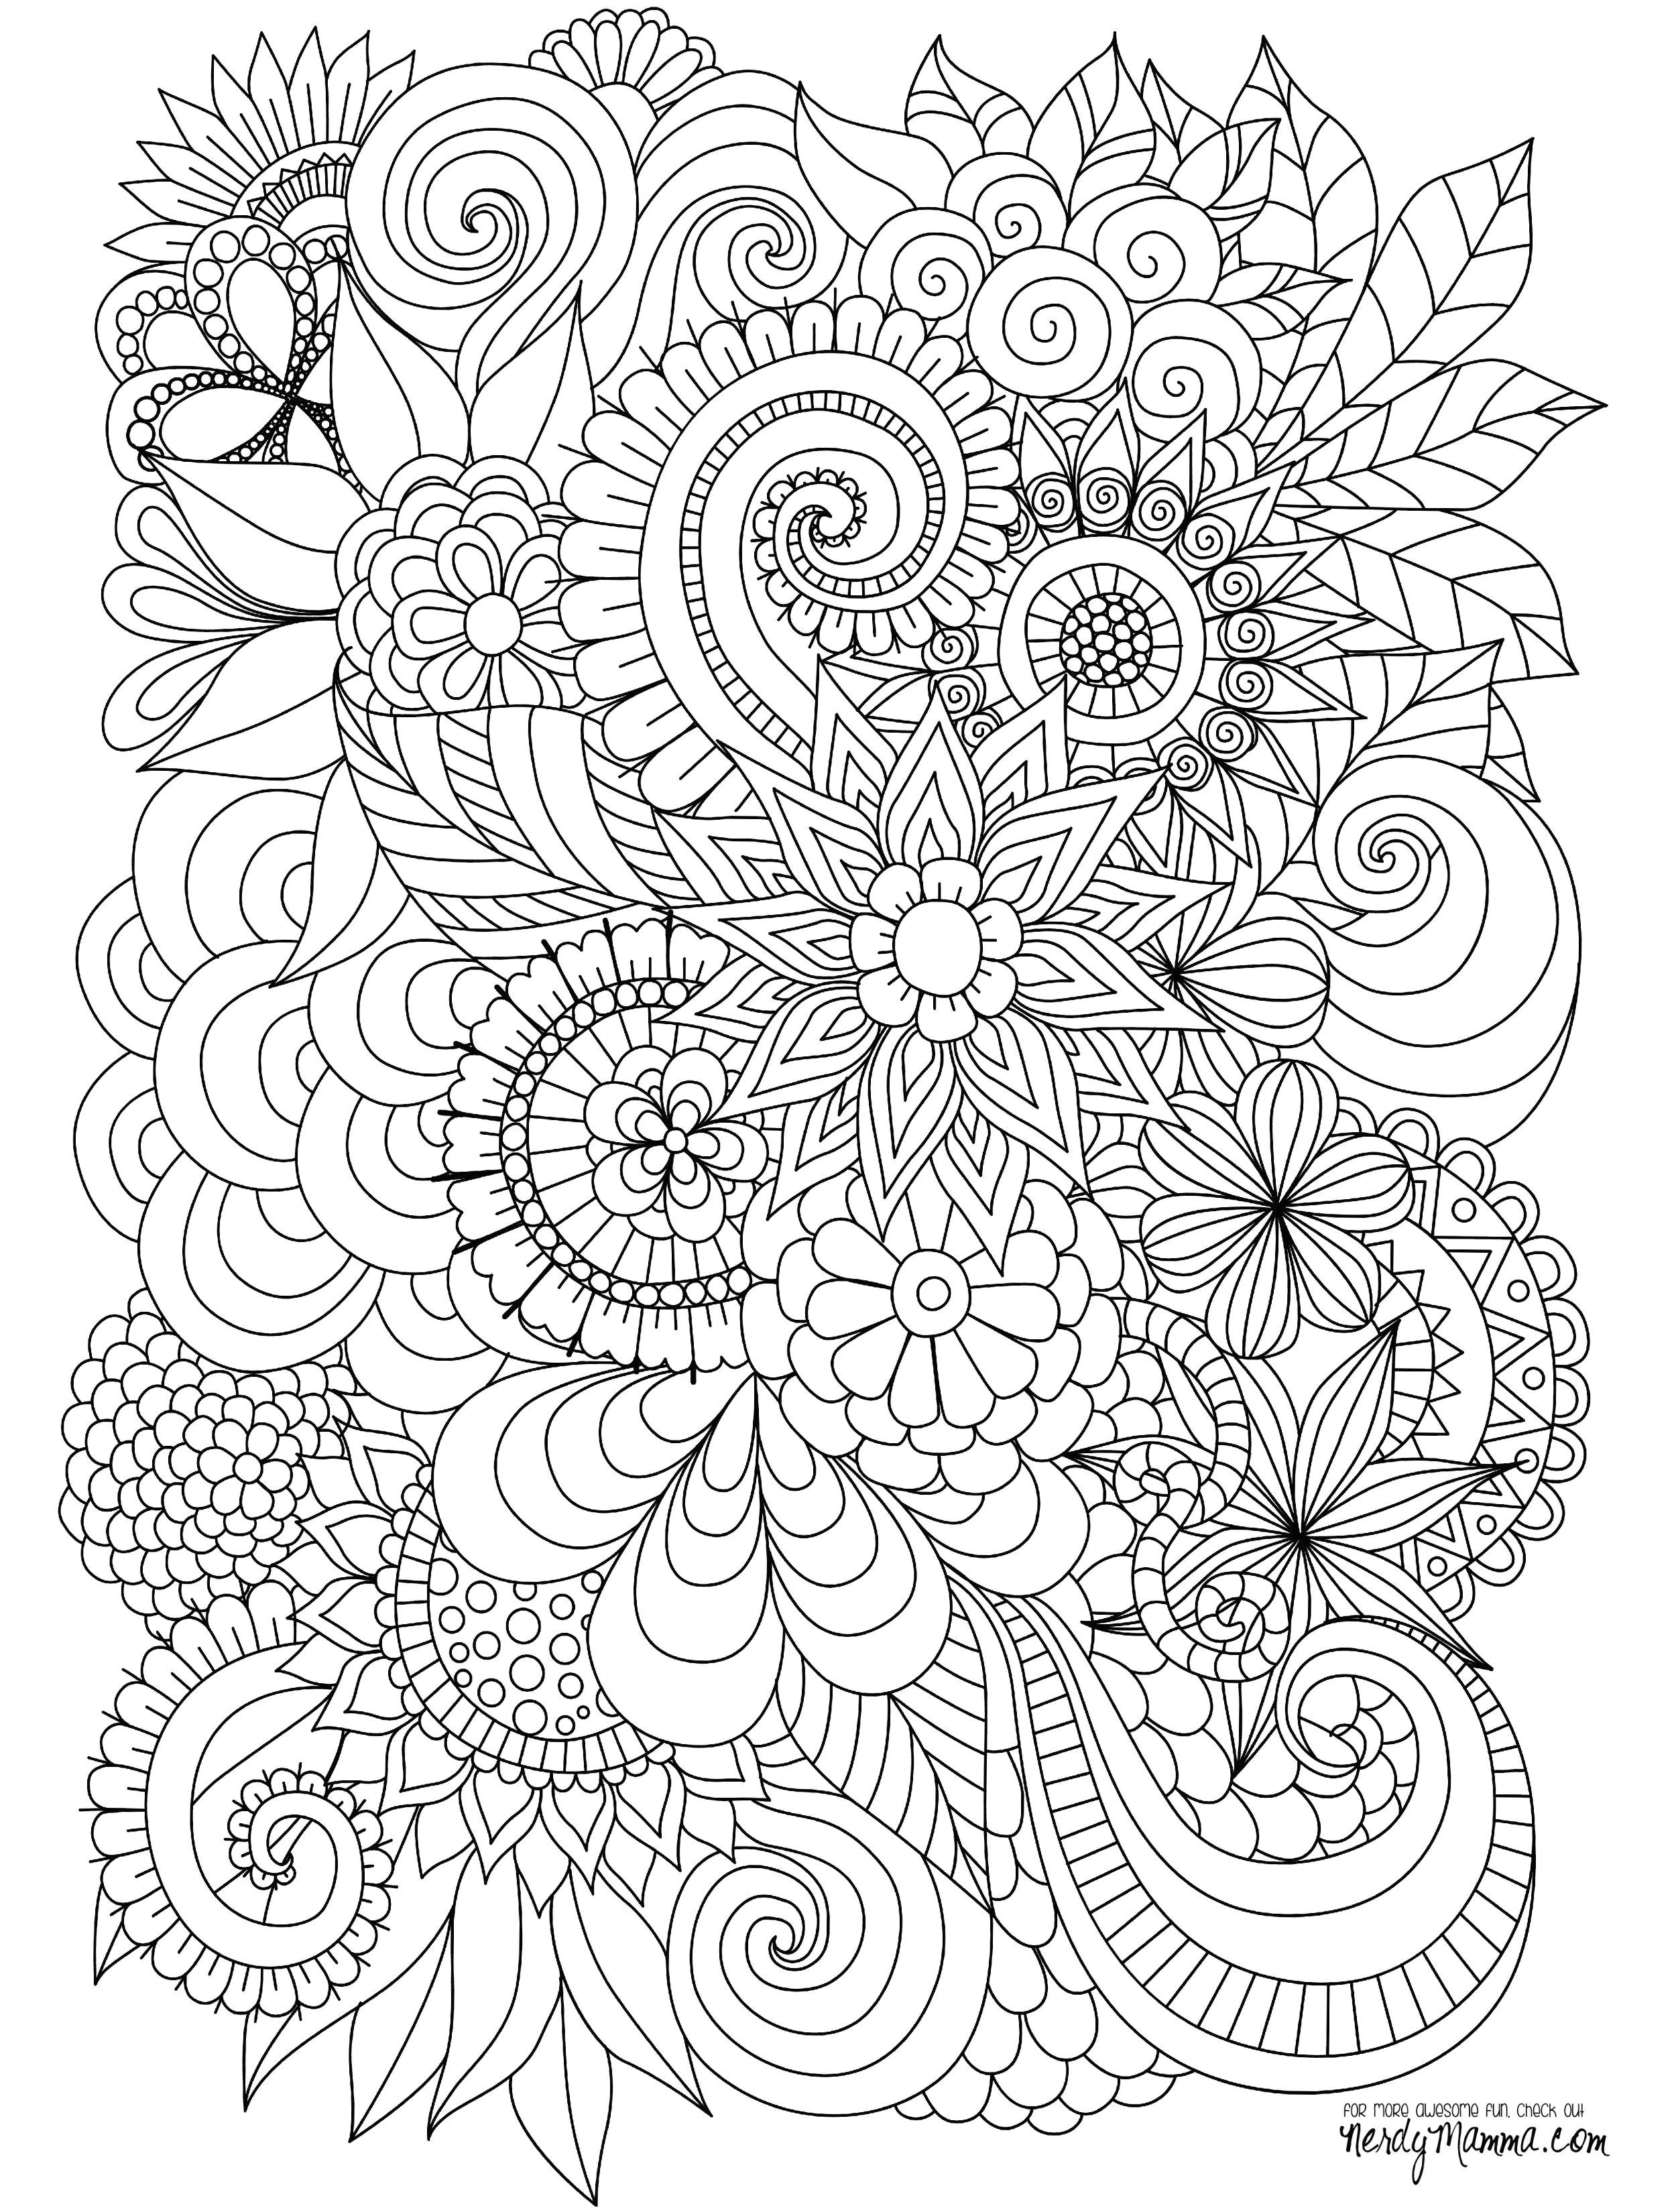 Drawing Detailed Flowers Flowers Abstract Coloring Pages Colouring Adult Detailed Advanced